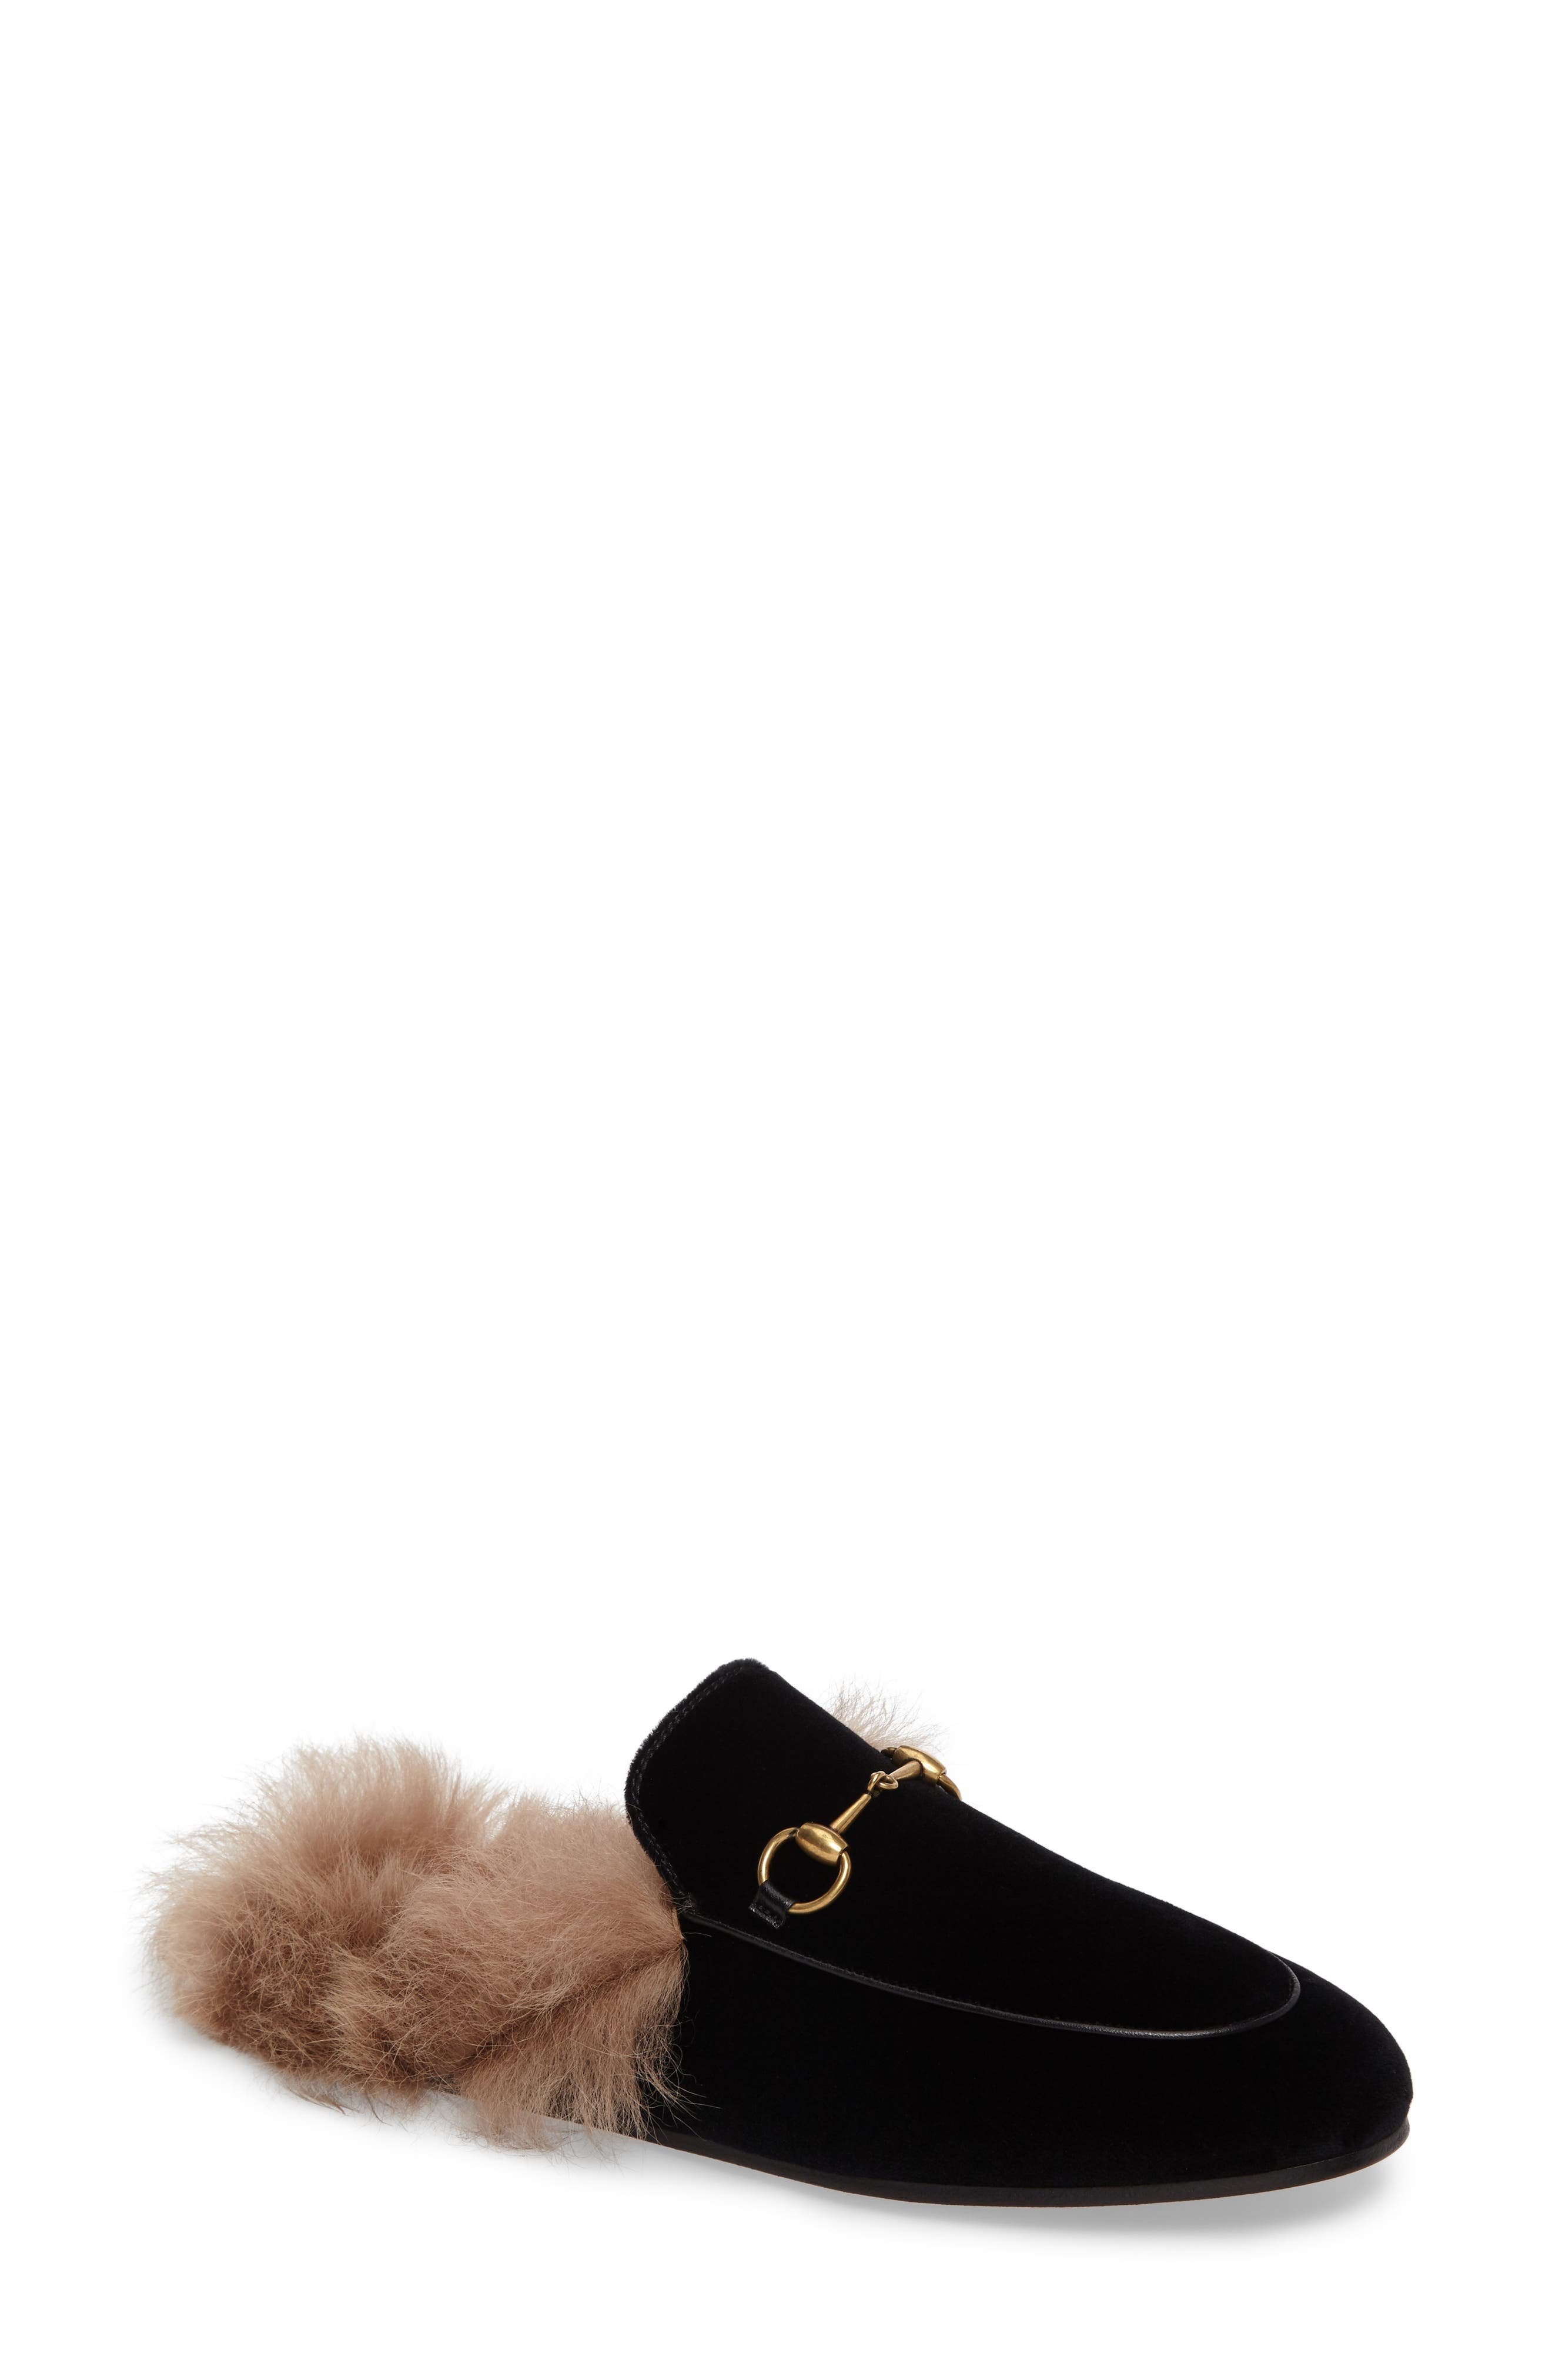 Princetown Genuine Shearling Mule Loafer,                             Main thumbnail 1, color,                             001